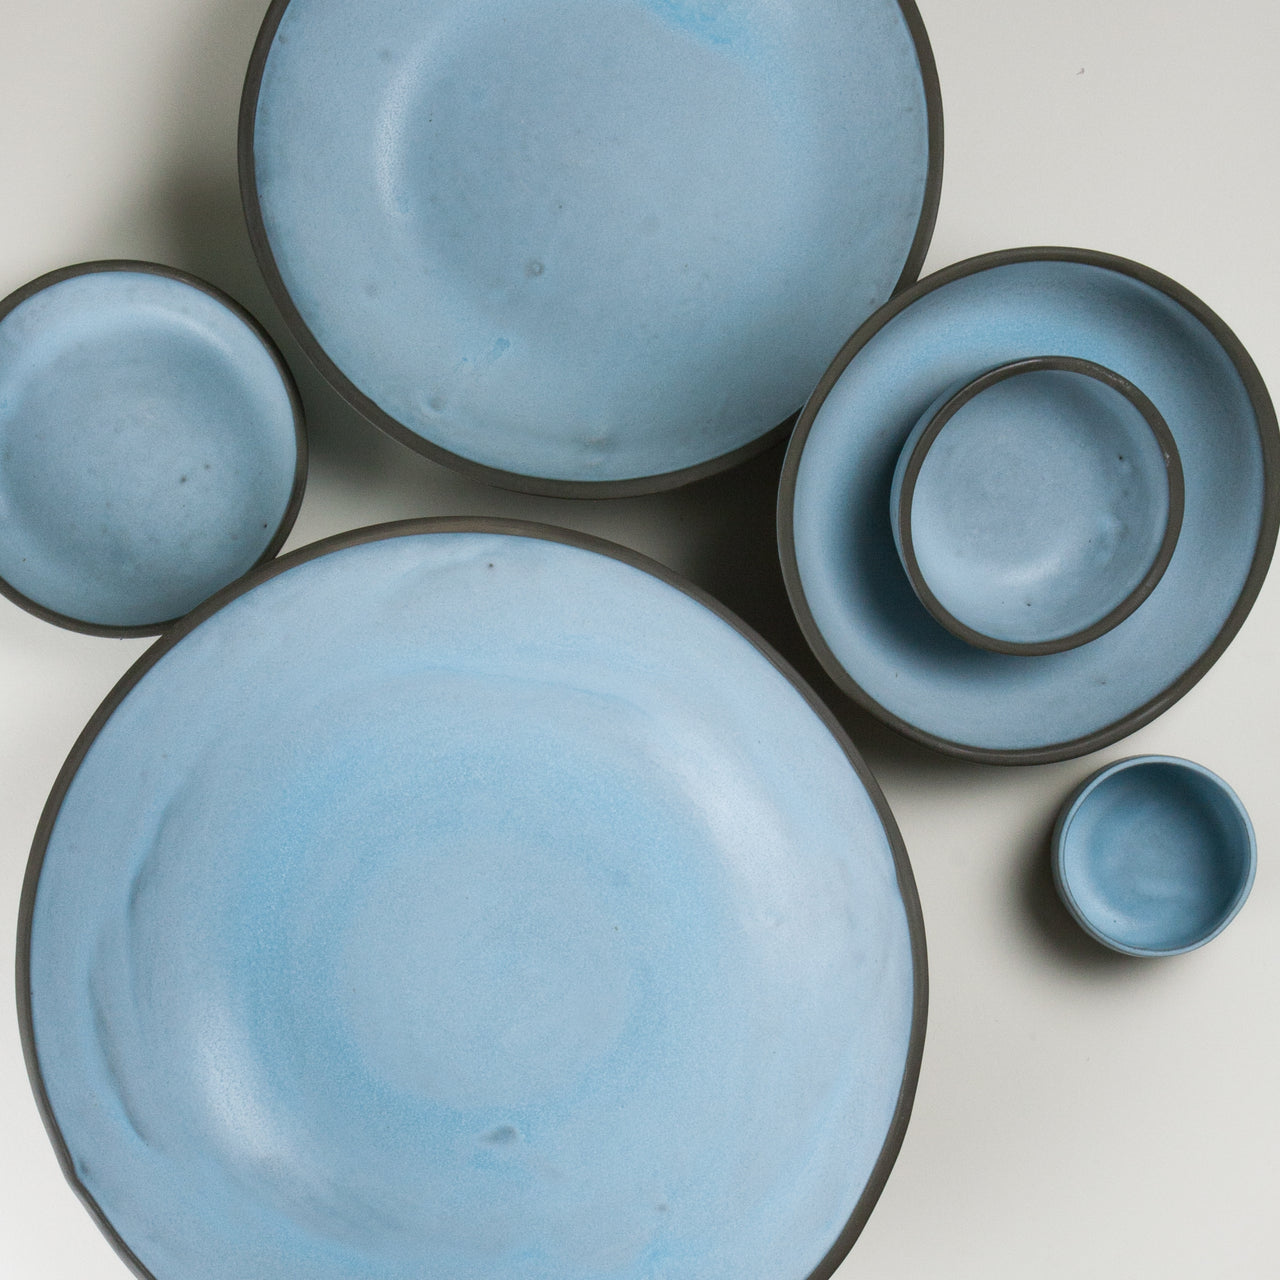 Elements Aqua Blue Bowls 3